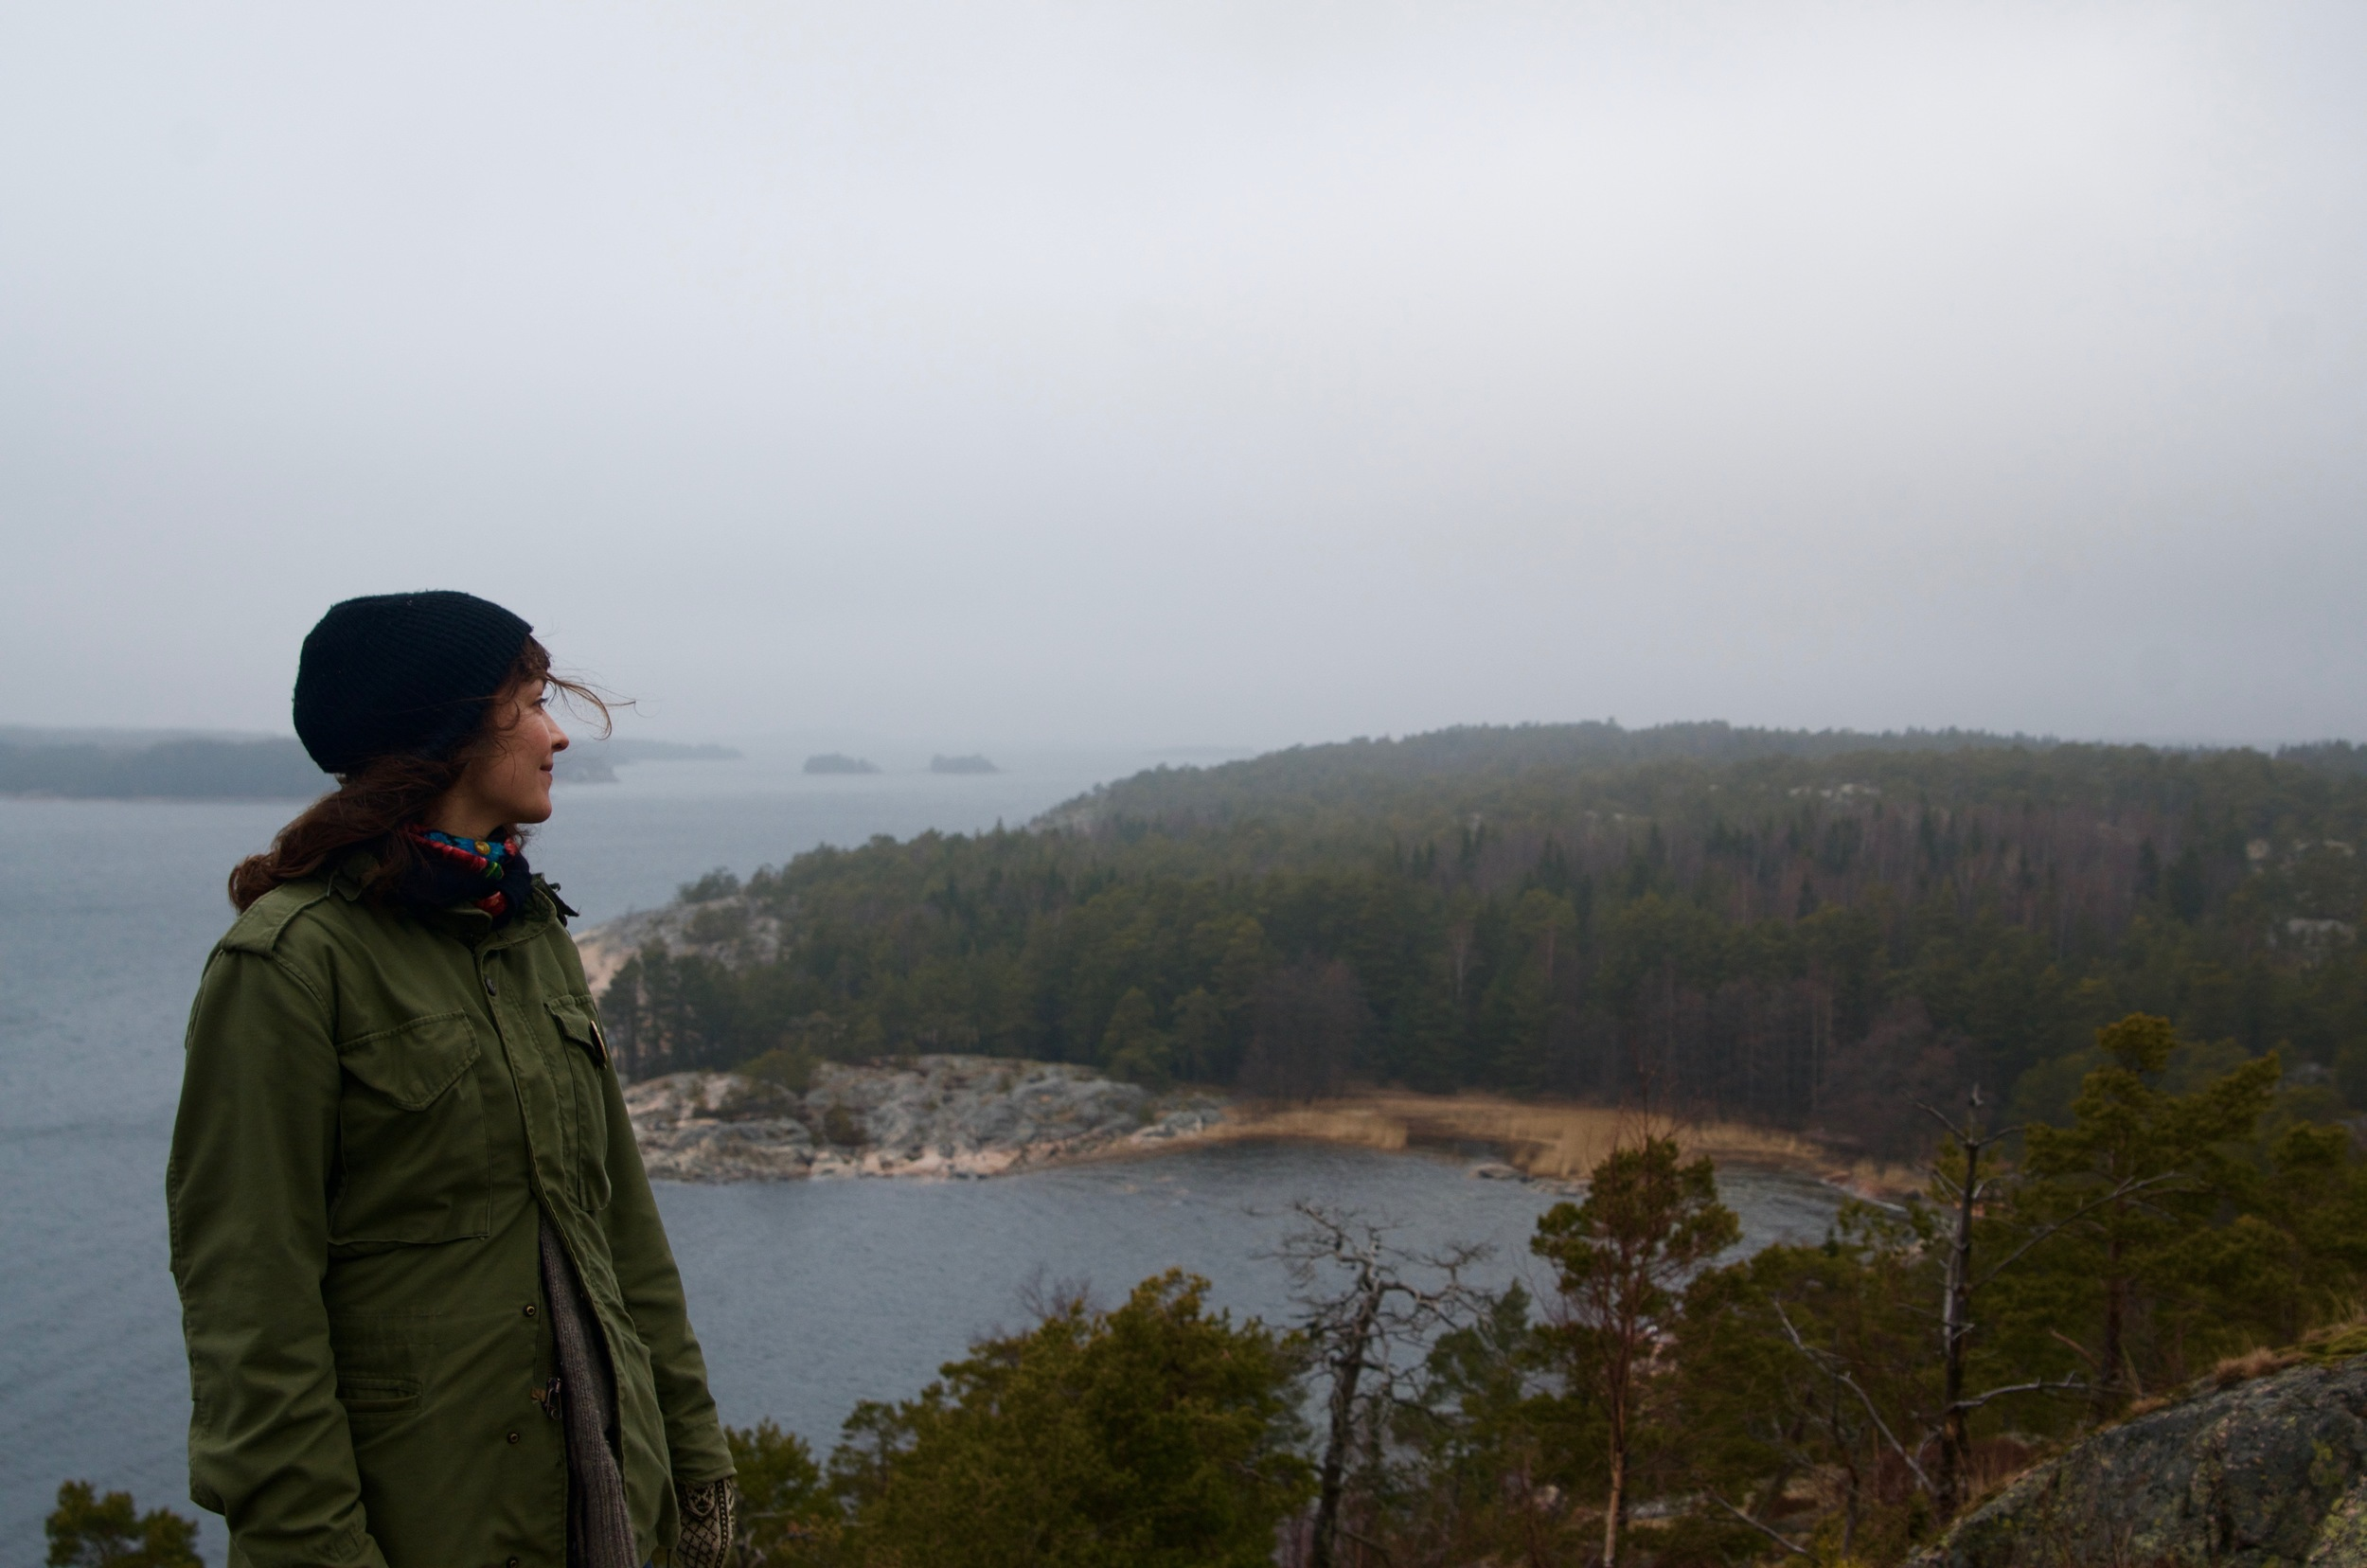 A photo by my friend Kristiina. Visiting the lands my grandmother's people came from. But that's another story about co-incidence, conservationist friends, and small island life in Finland <3